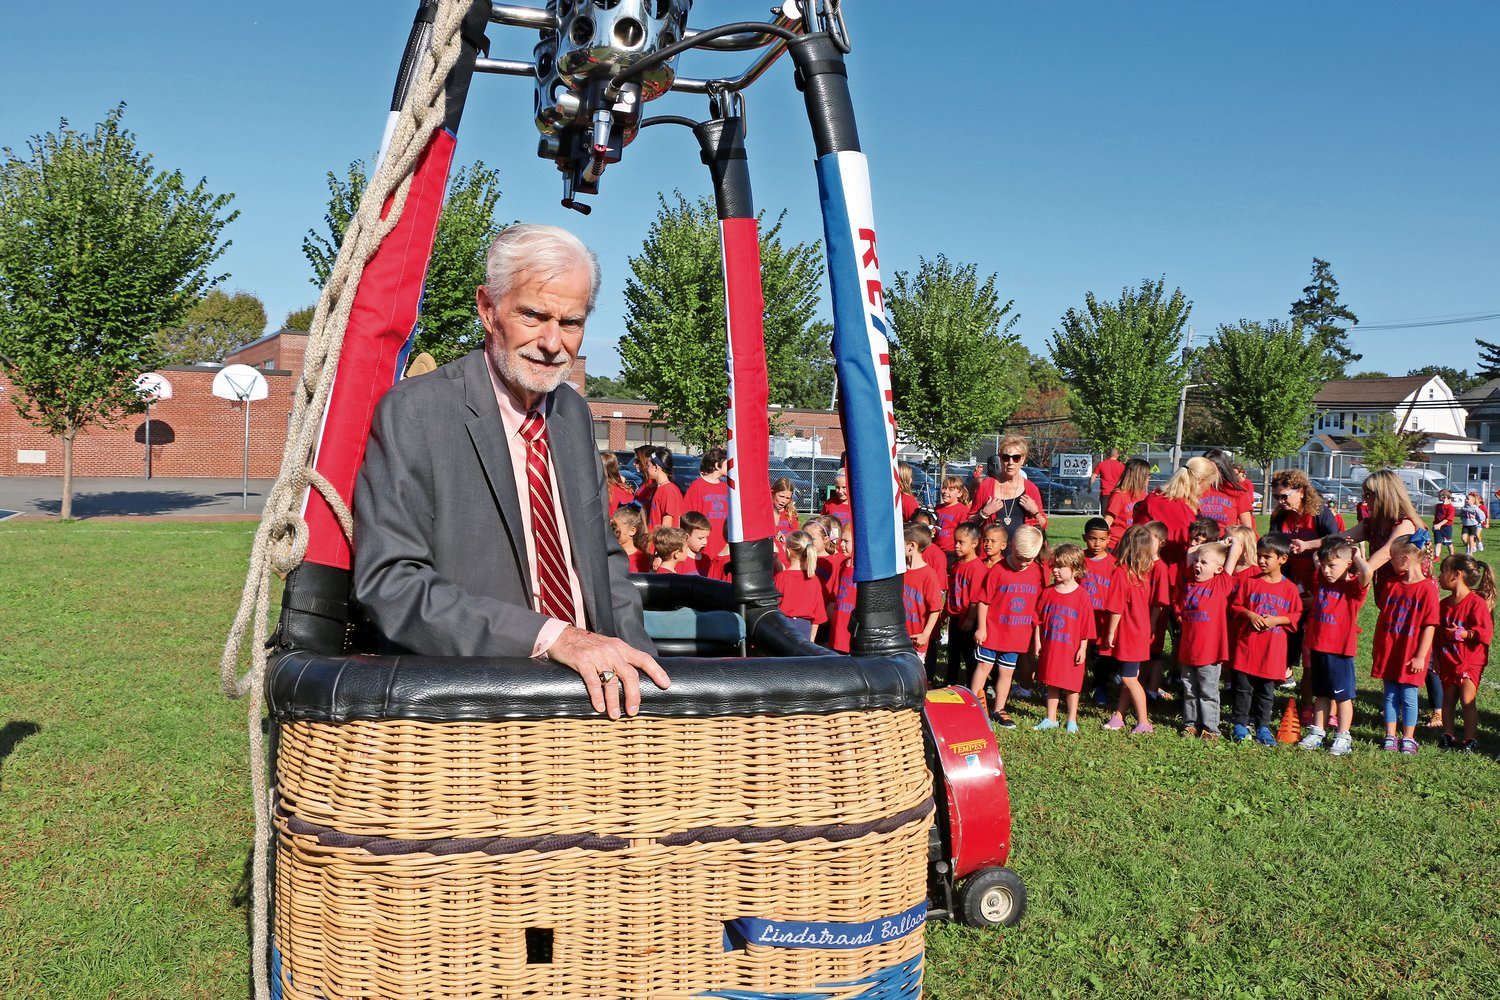 Johnson hopped into a hot-air balloon at an event at Watson School in September to promote its theme for this year, Soaring to New Heights.